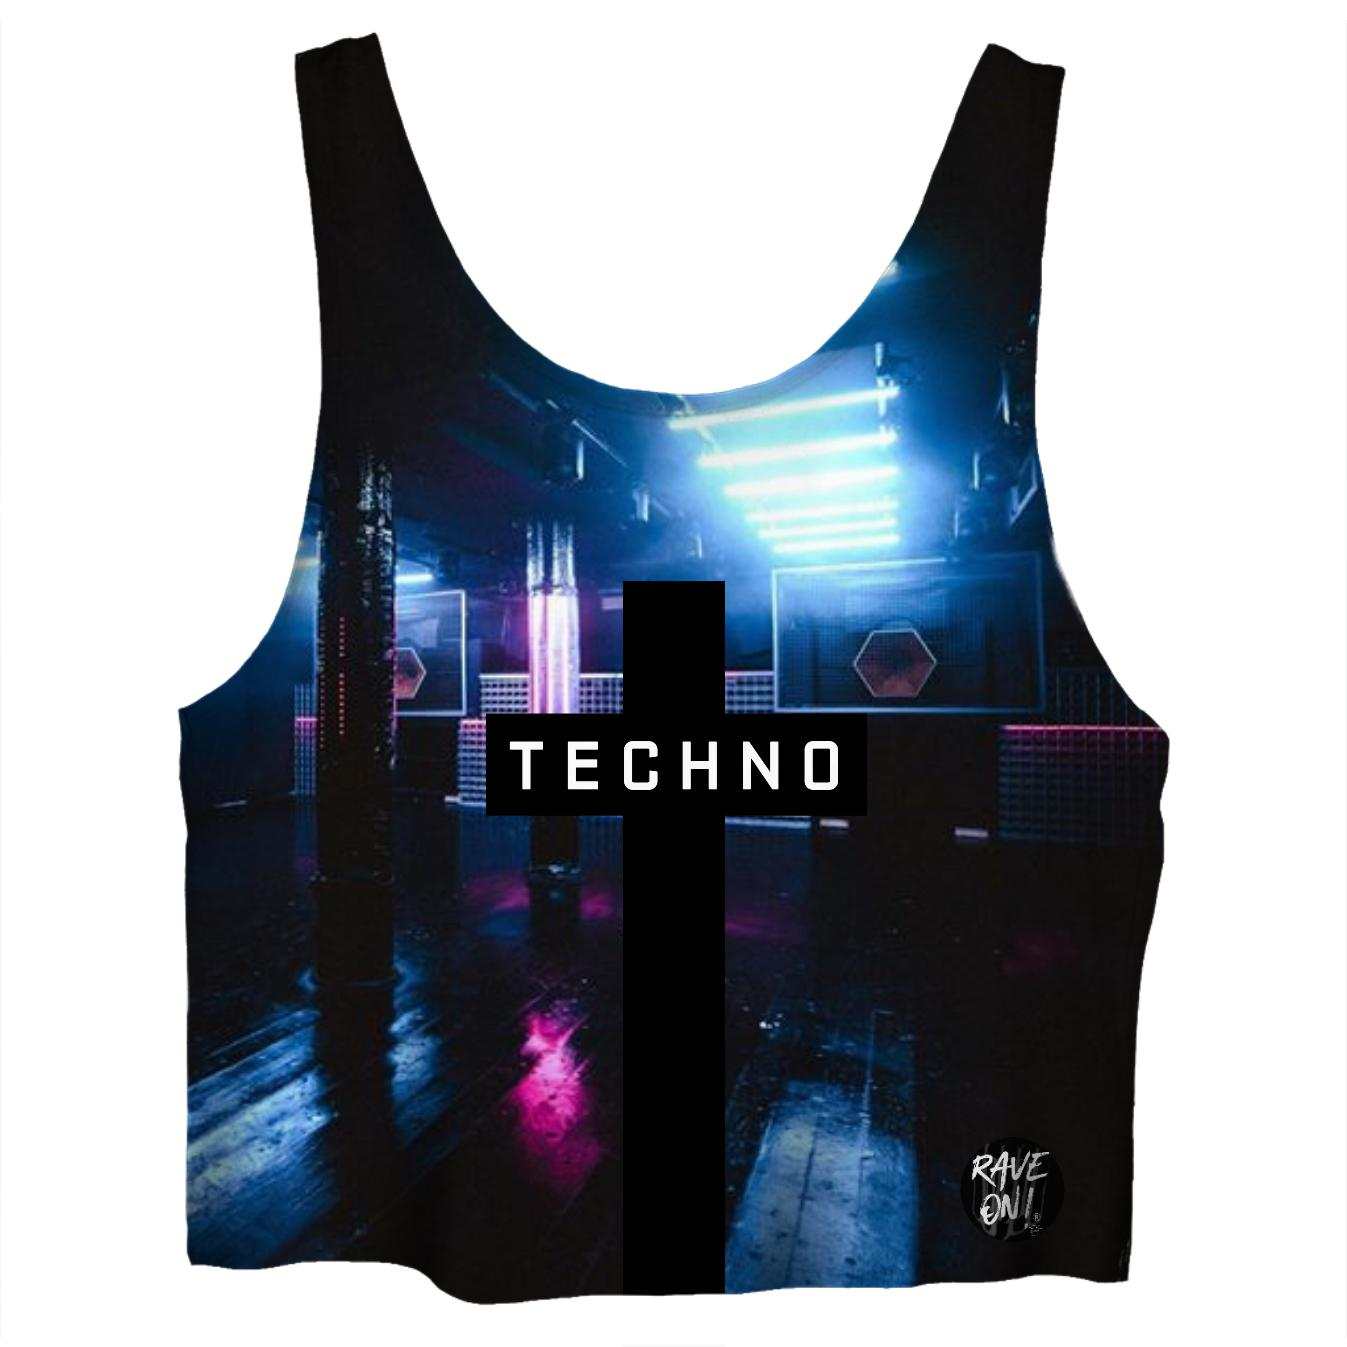 TECHNO Club CropTop - Rave On!® All-Over-360Print-Crop Tops-Rave-On! I www.rave-on.shop I Deine Rave & Techno Szene Shop I 360, 360 print, all over print, apparel, club wear, clubbing, clubbing top, clubbing wear, crop, crop top, crop tops, cropped, croptop, damenshirt rakete, die rakete, die rakete 2020, die rakete 2021, die rakete 2022, die rakete 2023, die rakete 2024, die rakete nürnberg, dierakete, disco, disco top, frauen, hot crop top, i heart raves, kreuz, ladies, merch nürnberg rakete,